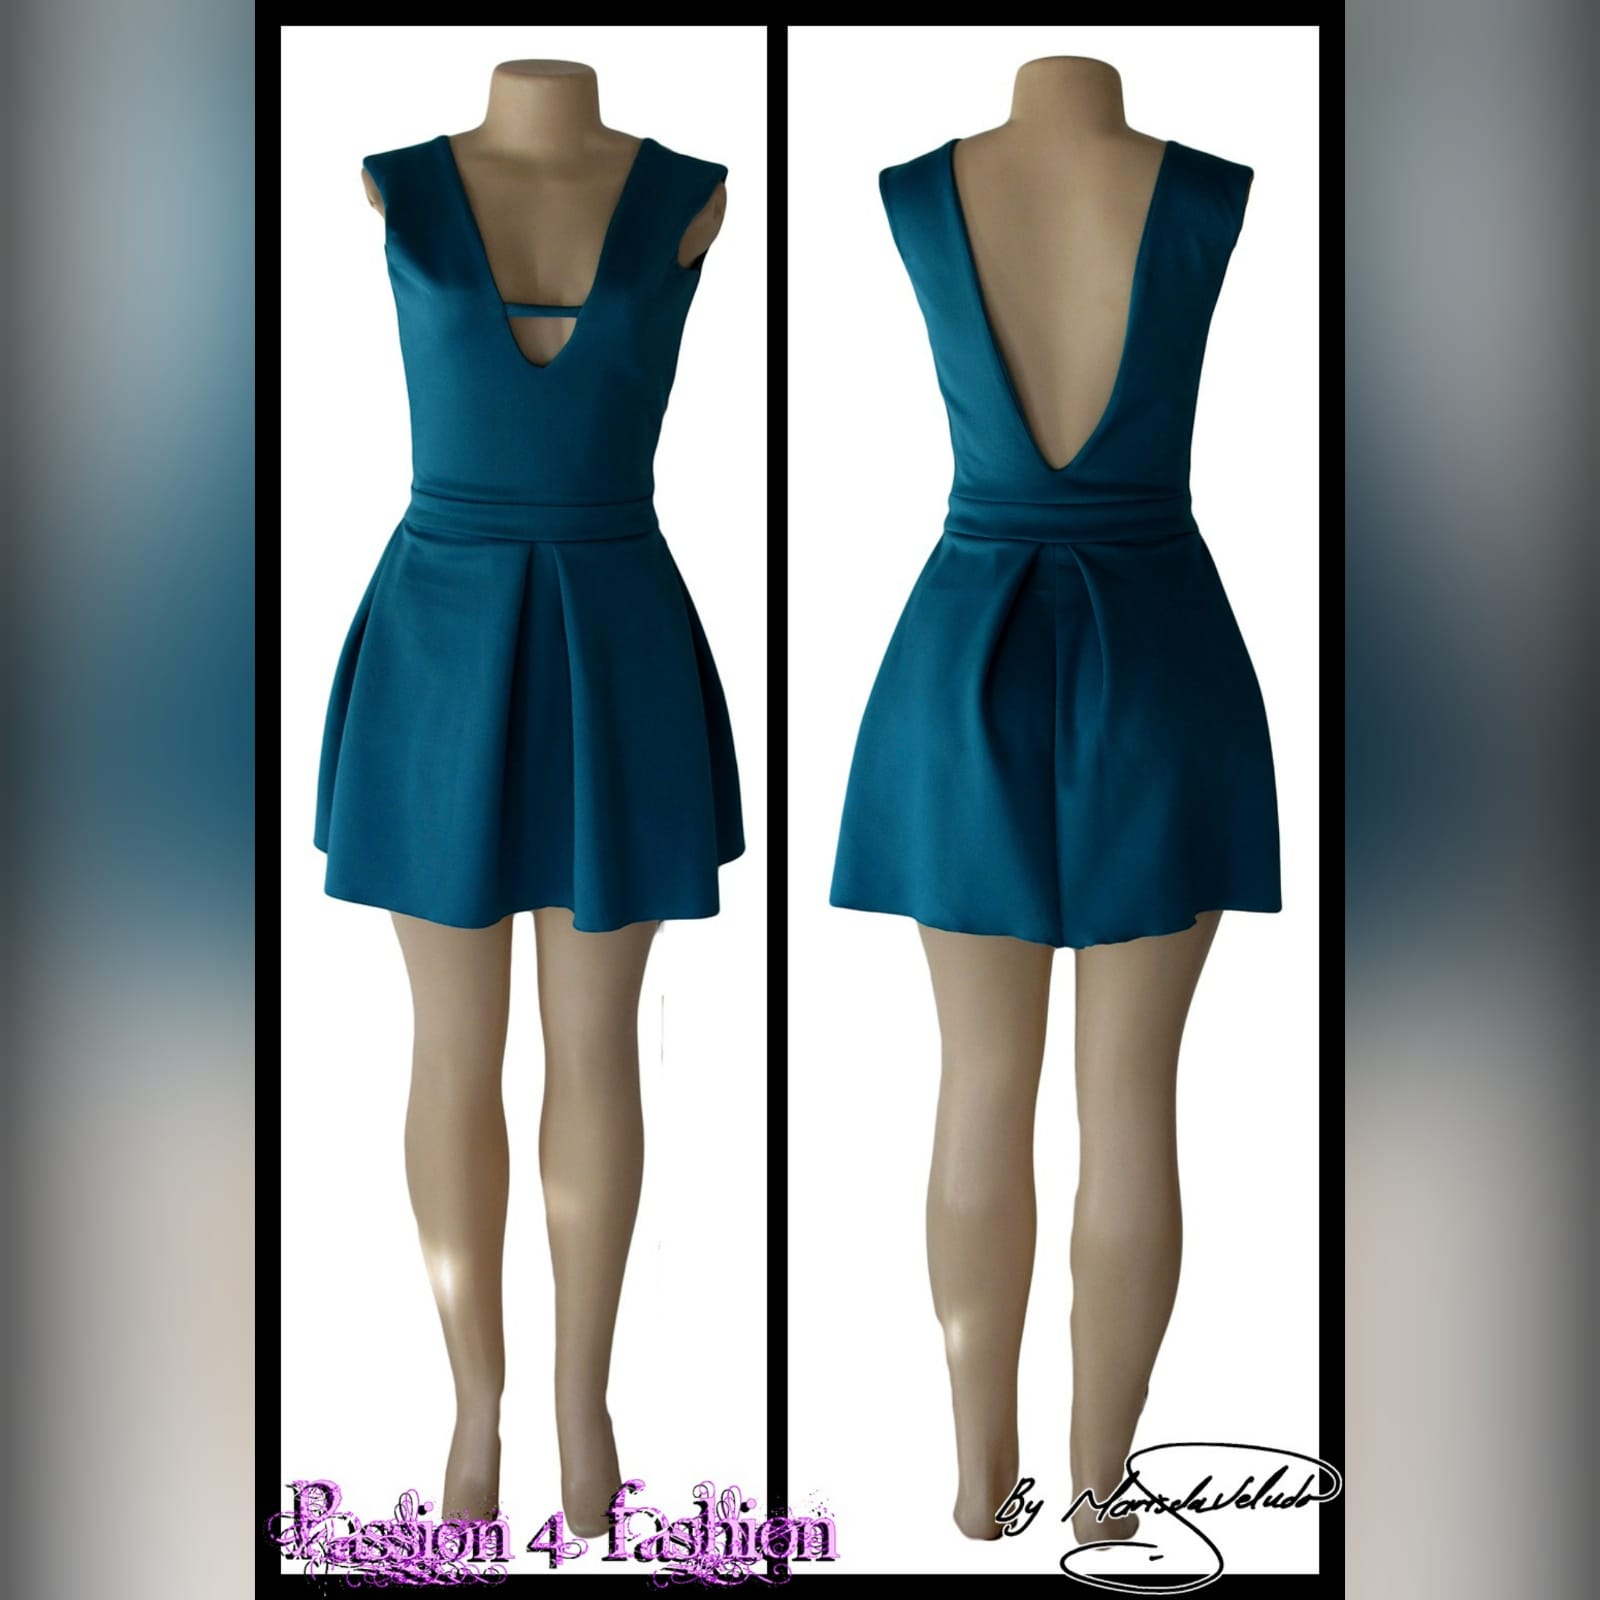 Turquoise green short smart casual dress 4 turquoise green short smart casual dress with a v neckline in front and a low v open back, with a waistband, and wide pleats on the bottom.